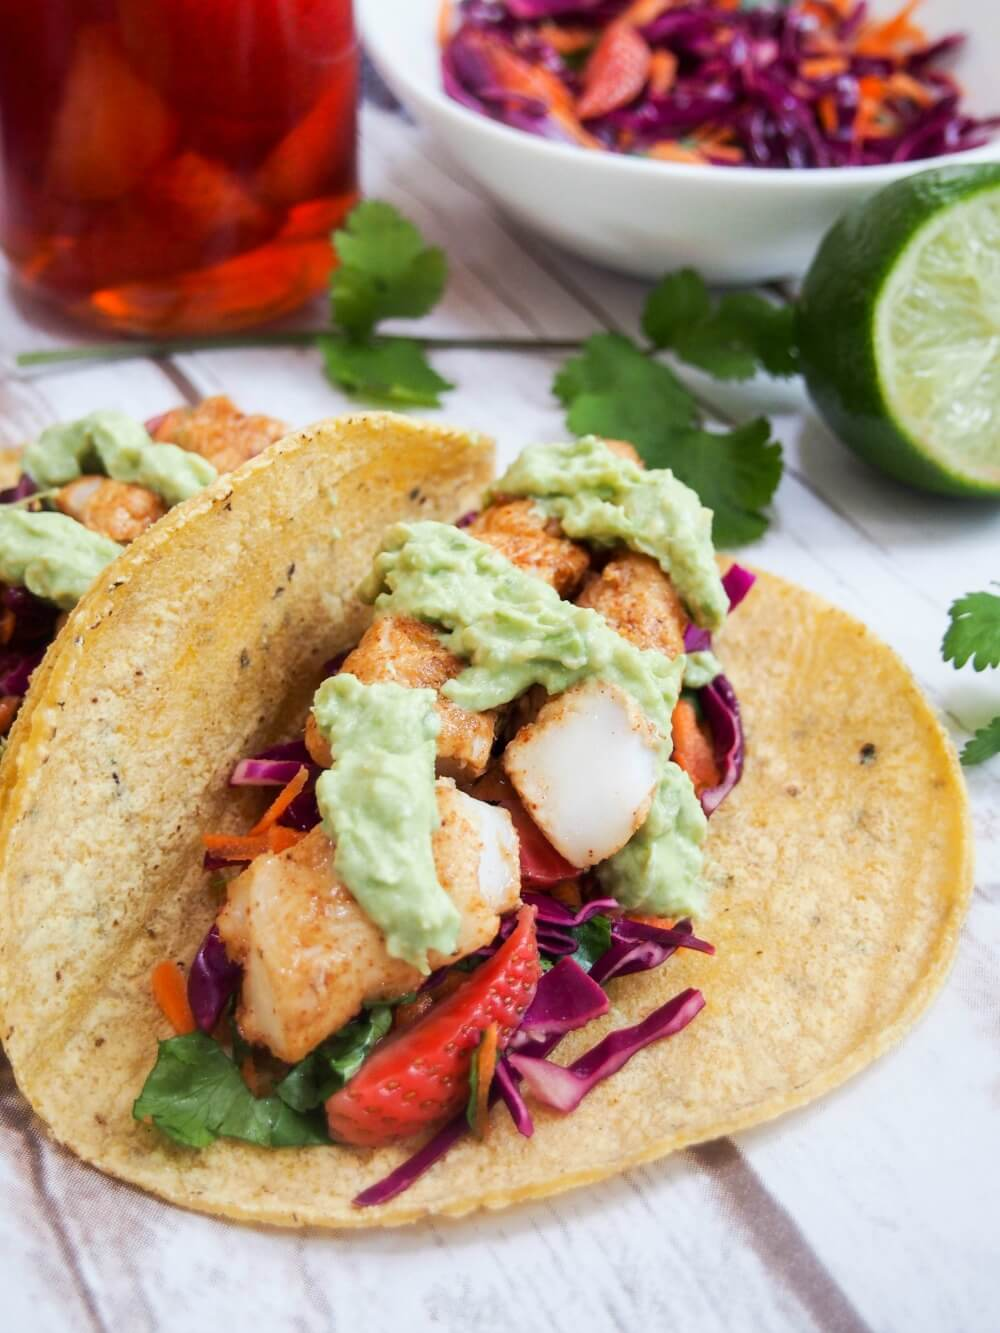 Cod tacos with pickled strawberry slaw with avocado on top